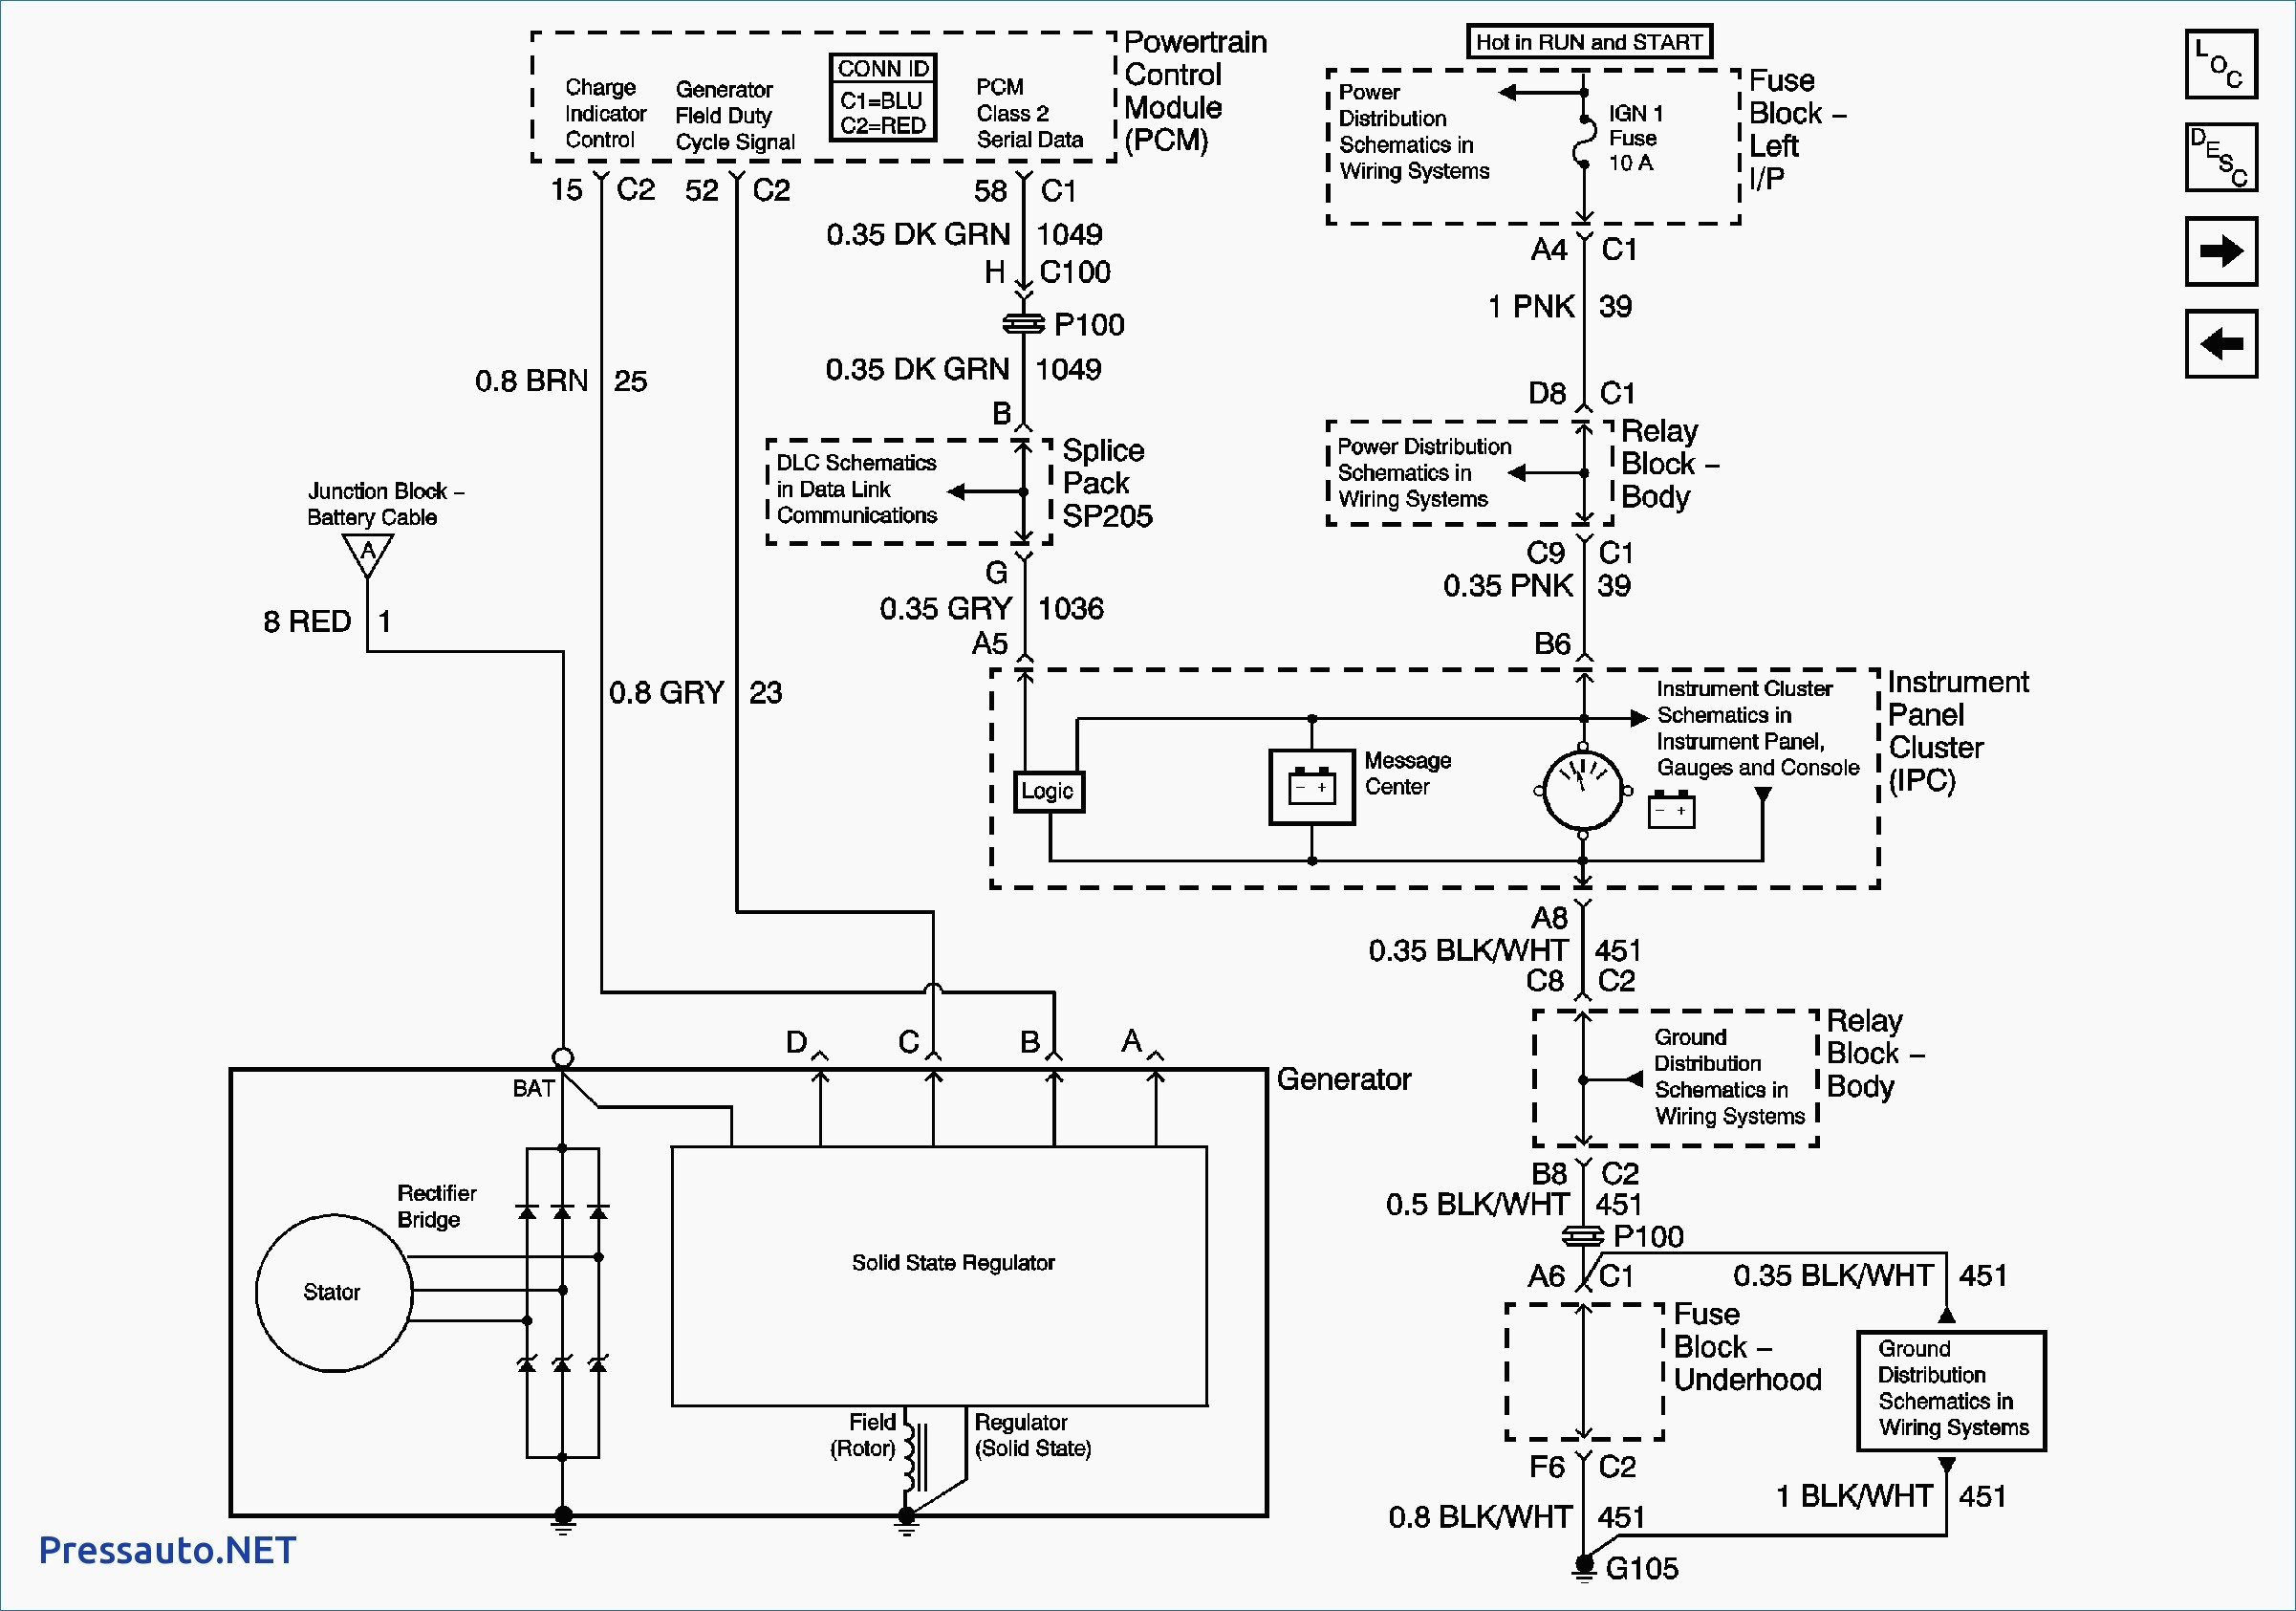 Chevy 350 2Wire Alternator Diagram | Wiring Diagram - Gm 2 Wire Alternator Wiring Diagram